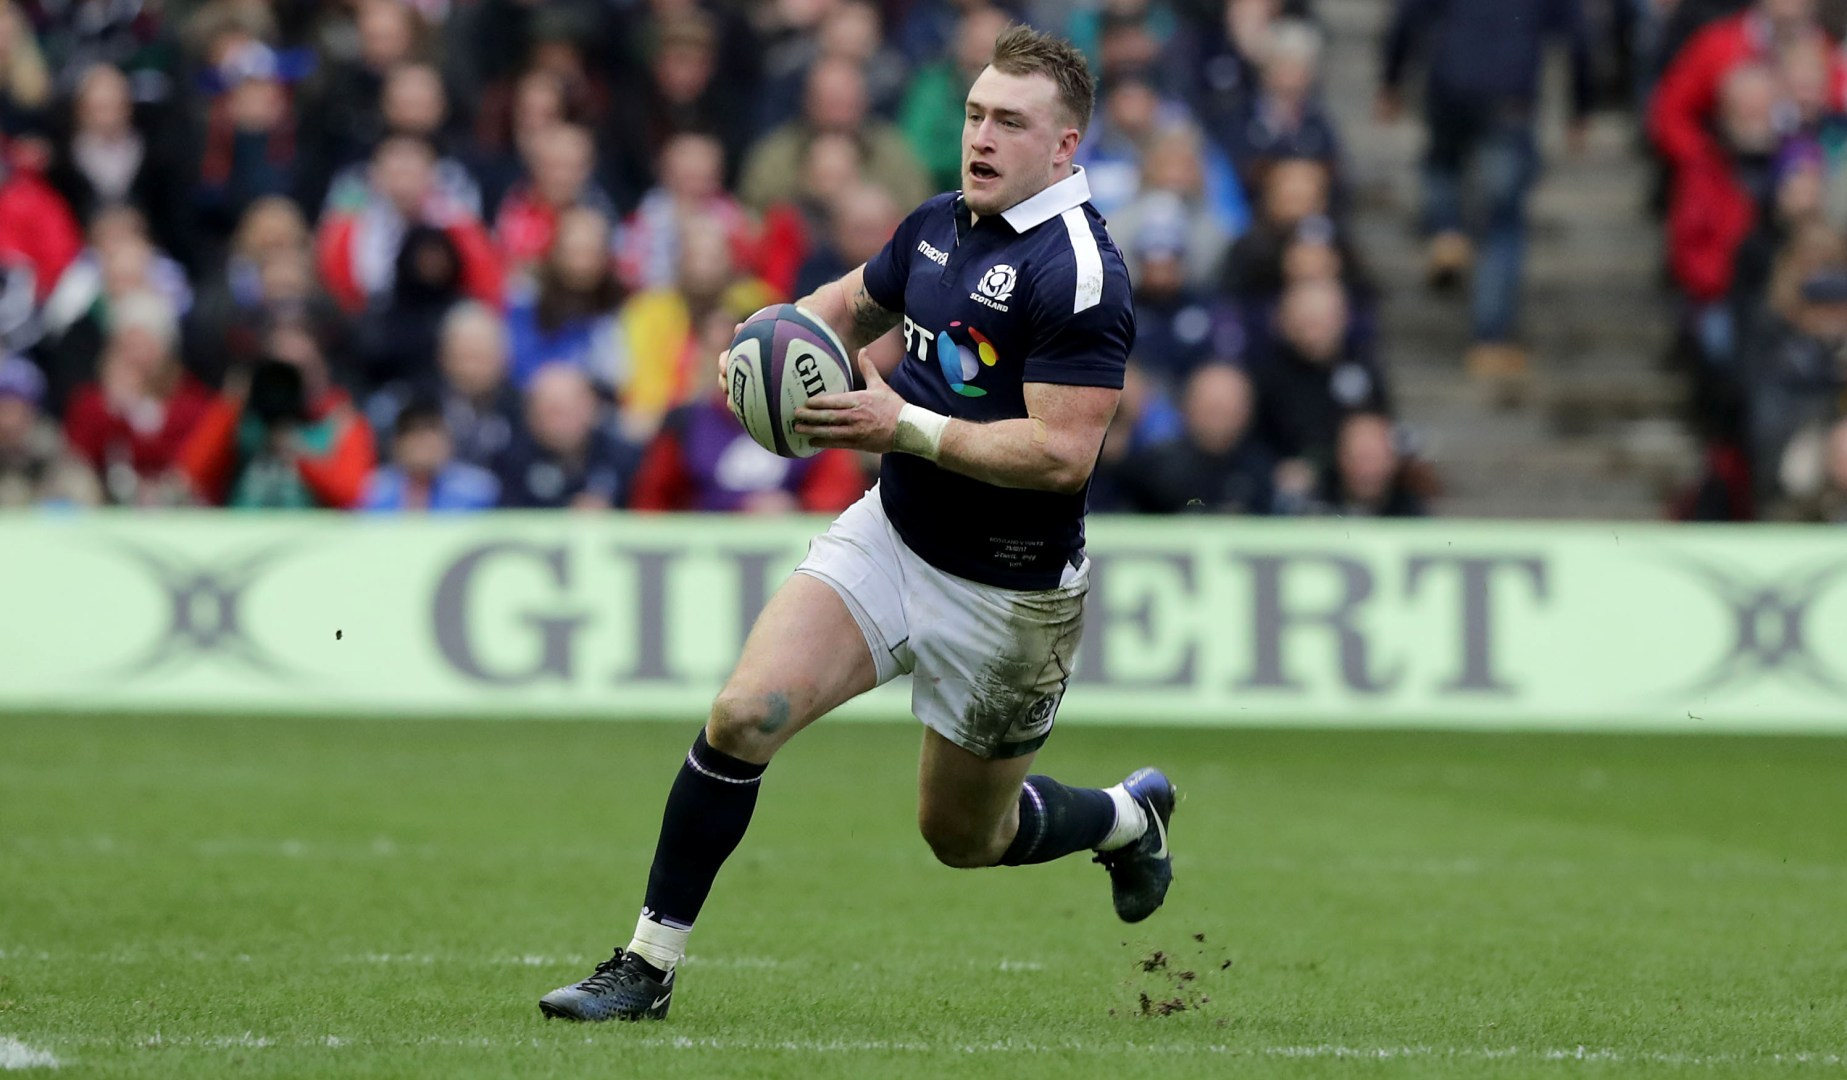 LionsWatch: Scotland v Italy preview